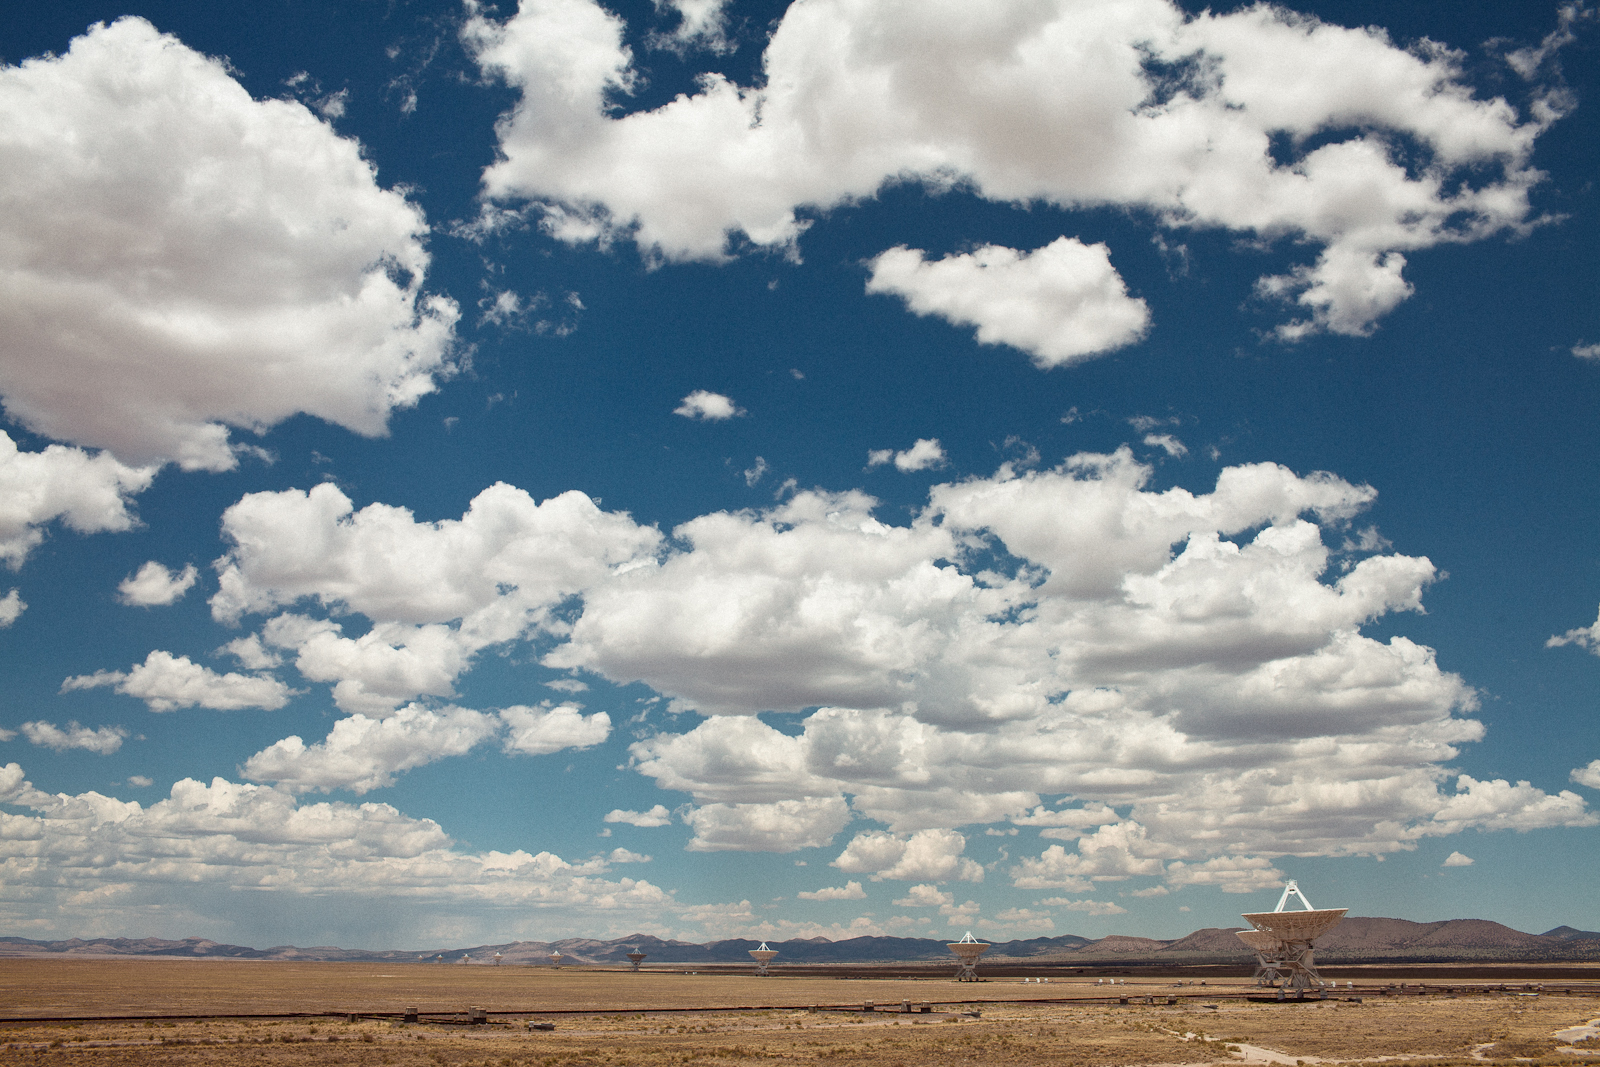 Very Large Array, New Mexico by Seattle based photographer Dylan Priest